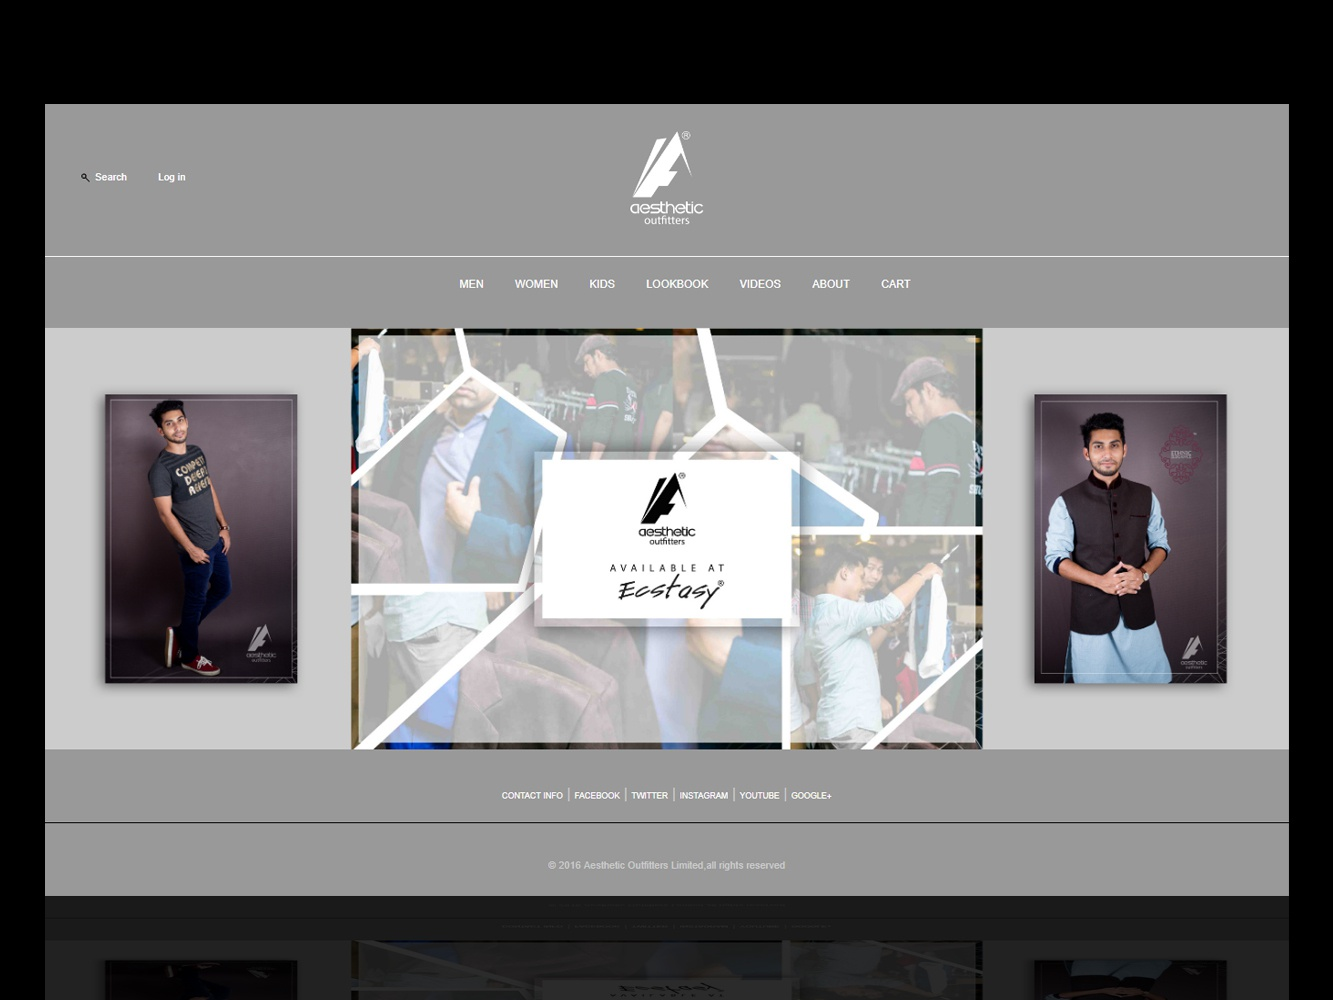 Aesthetic Outfitters home page clothing company clothing brand clothing website concept html css css html fashion ecommerce minimal grayscale gray grey outfitters aesthetic website ux ui design branding